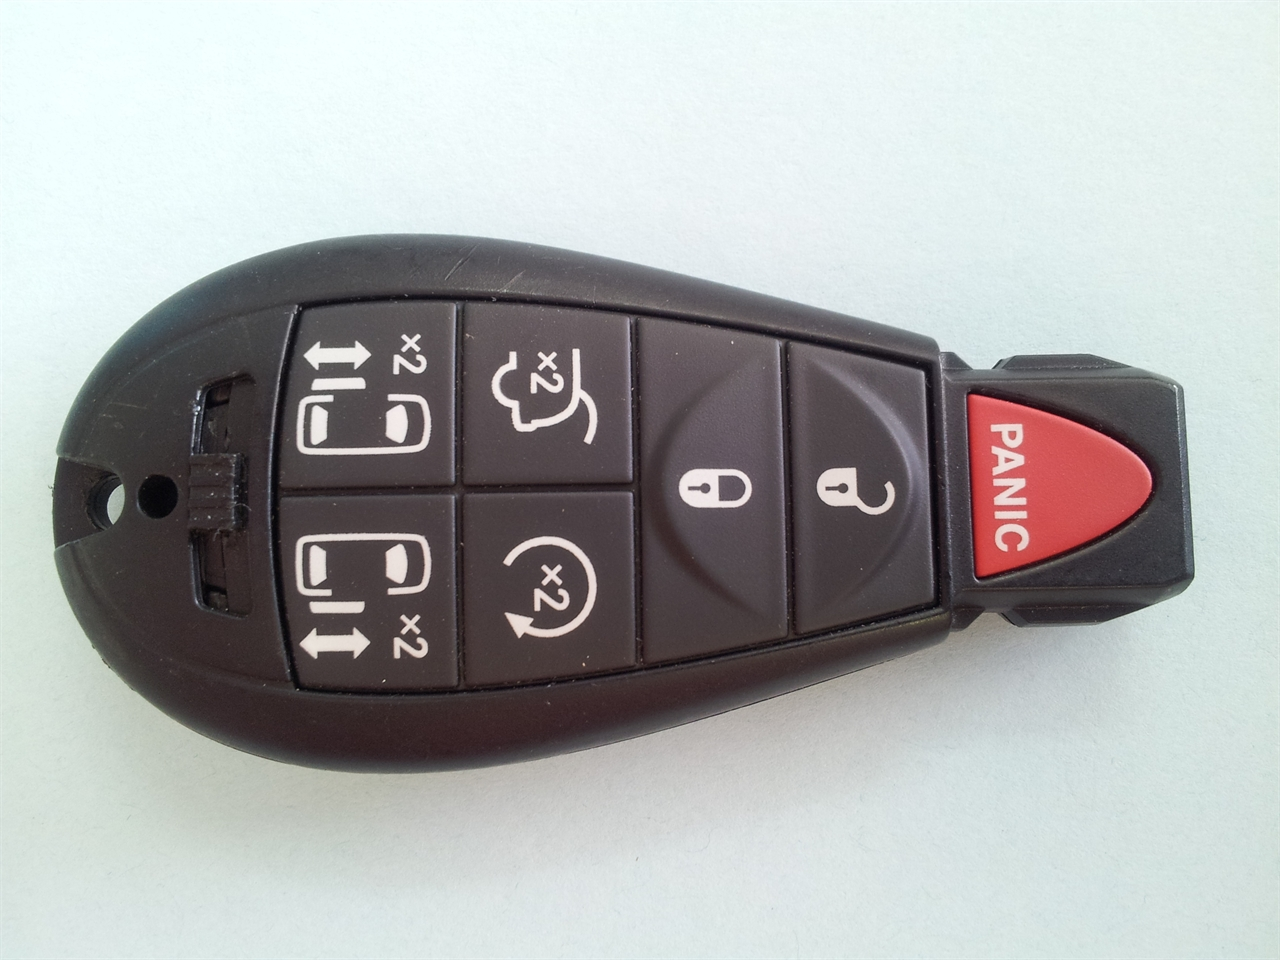 Chrysler Car key replacement services near me